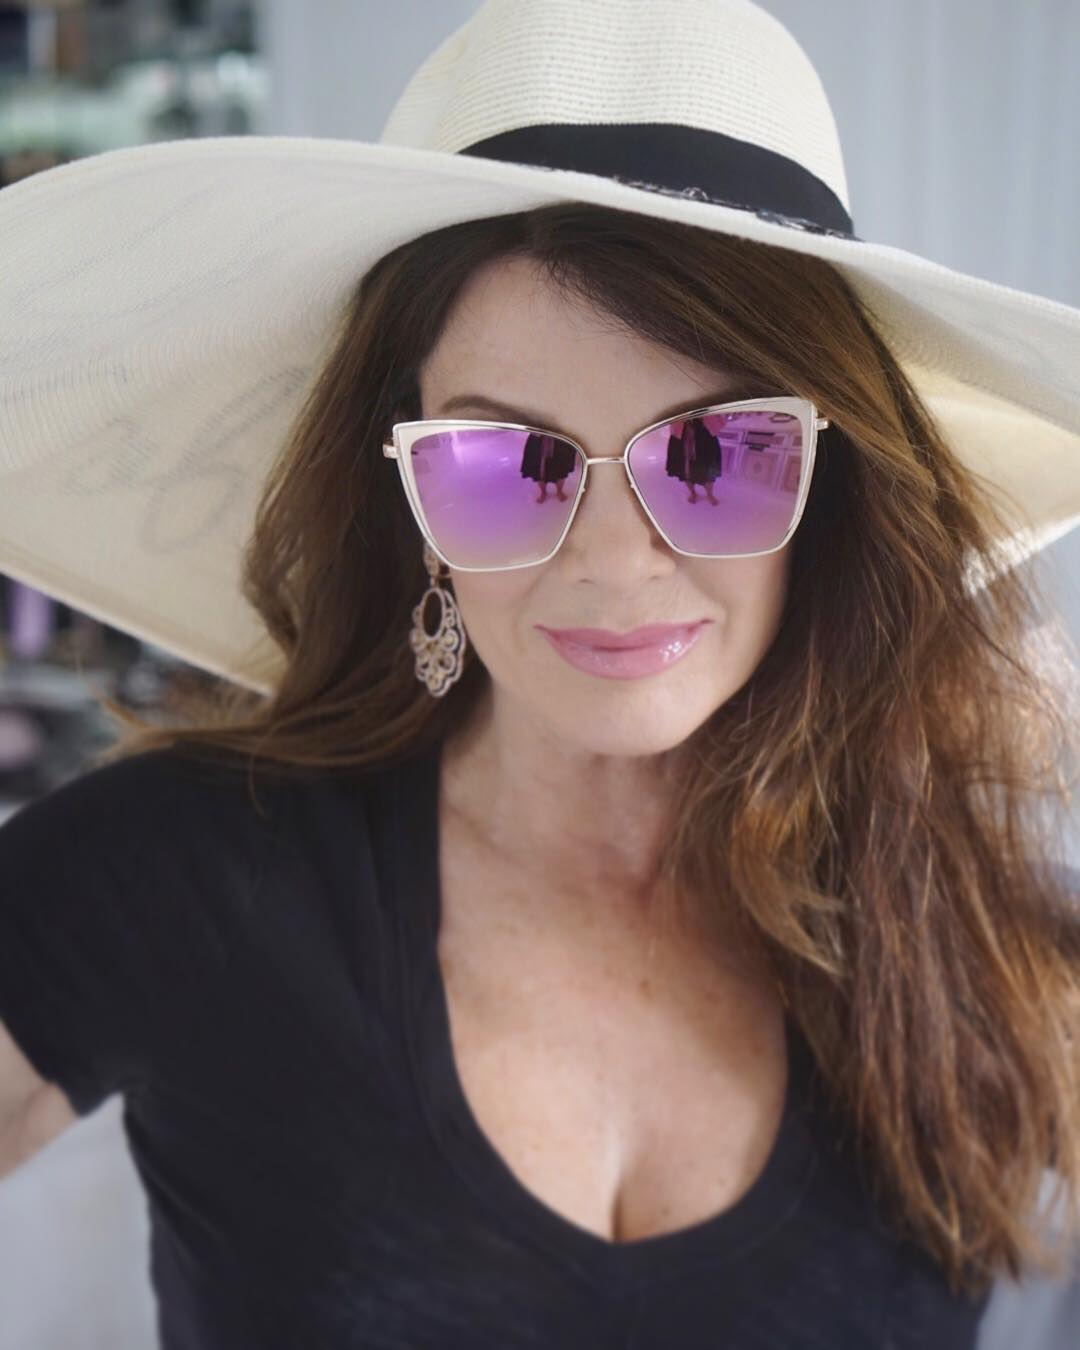 Lisa Vanderpump Hot in Hat